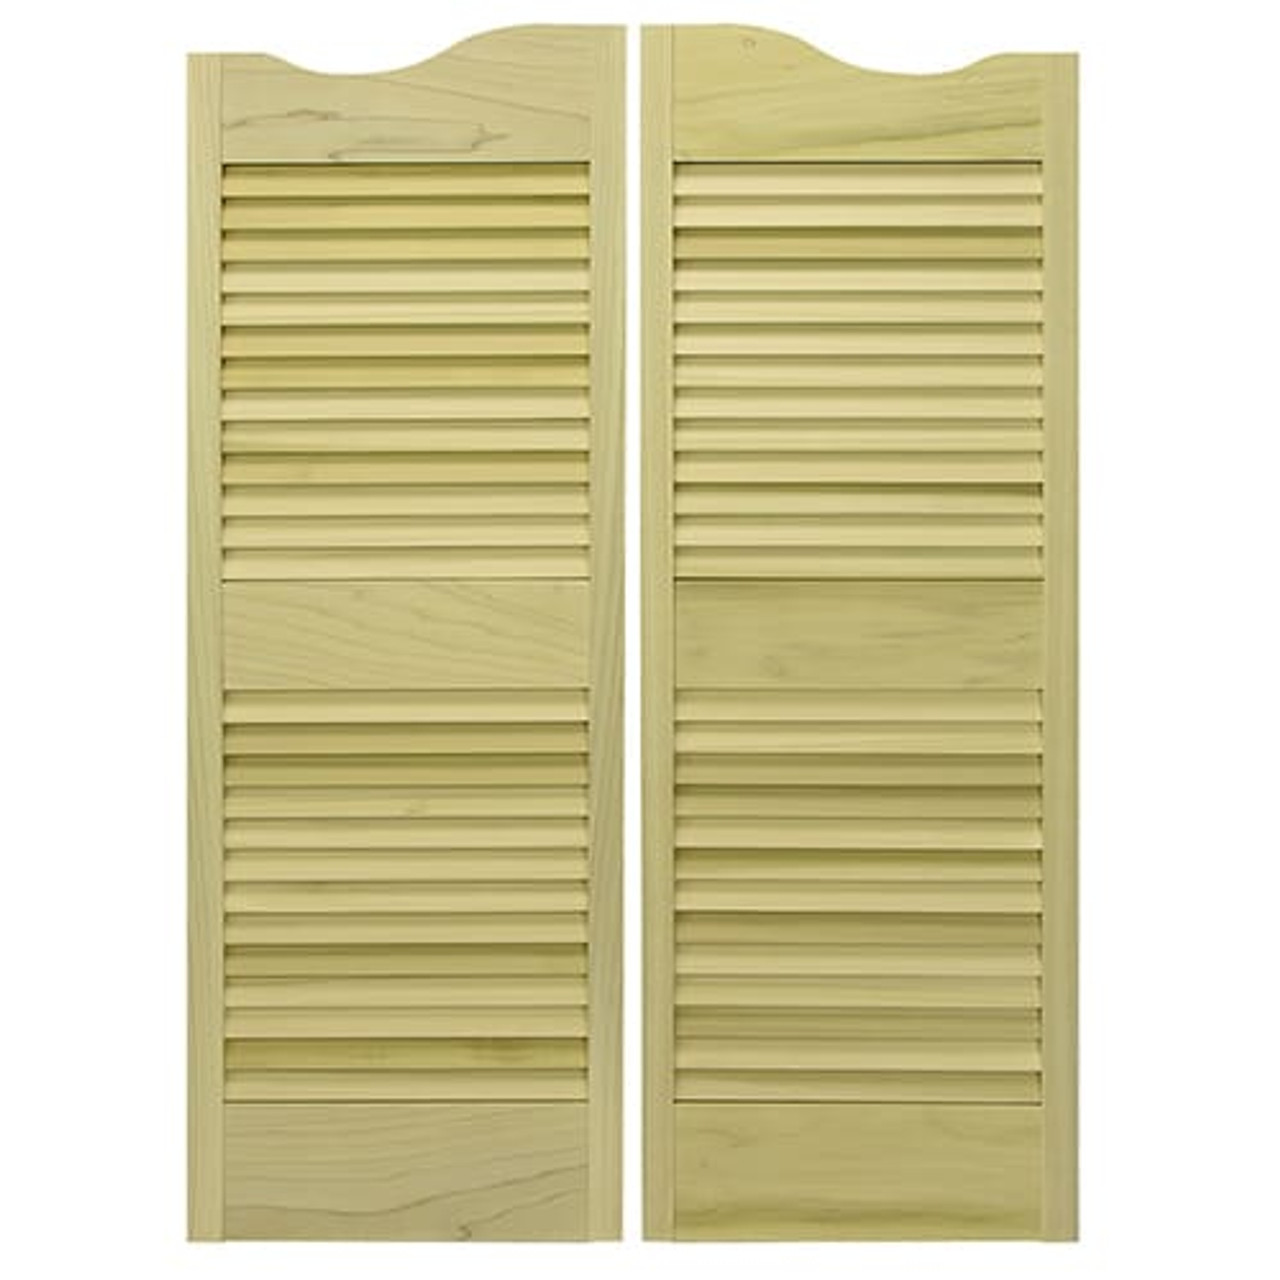 Scalloped Top Western Louvered Saloon Doors